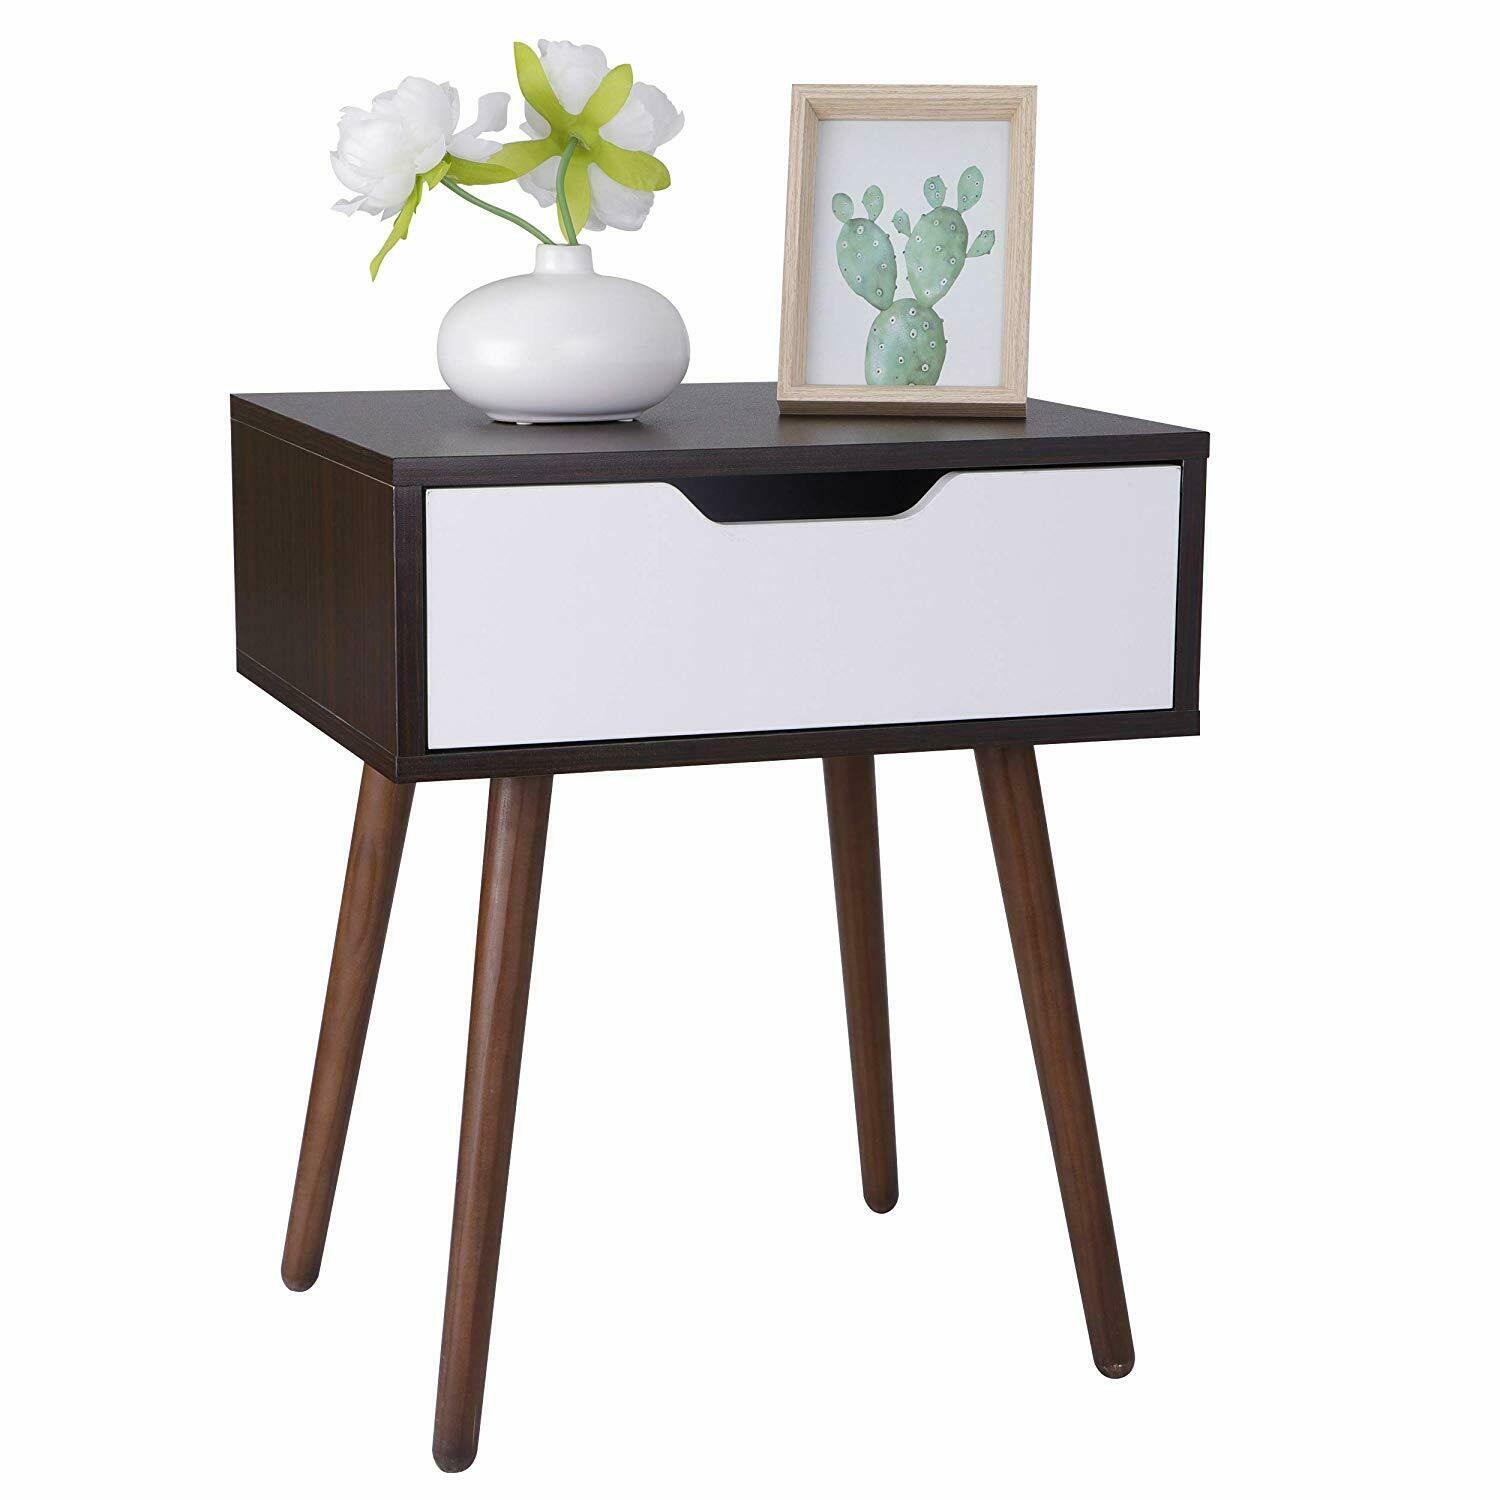 Wooden End Side Table for Small Spaces Nightstand Bedroom with Drawer